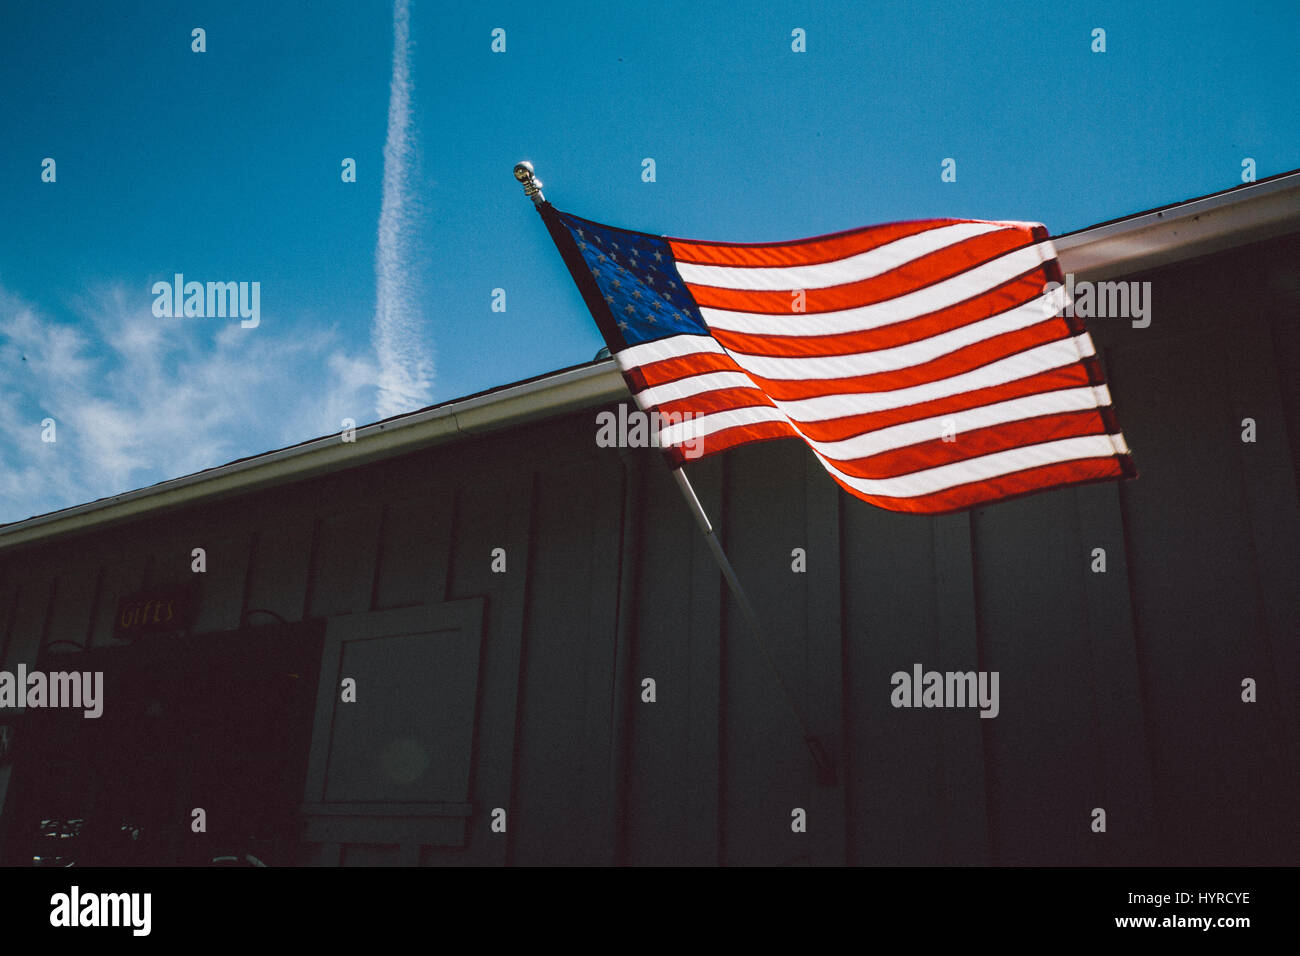 USA Flag Blowing in the Wind - Stock Image